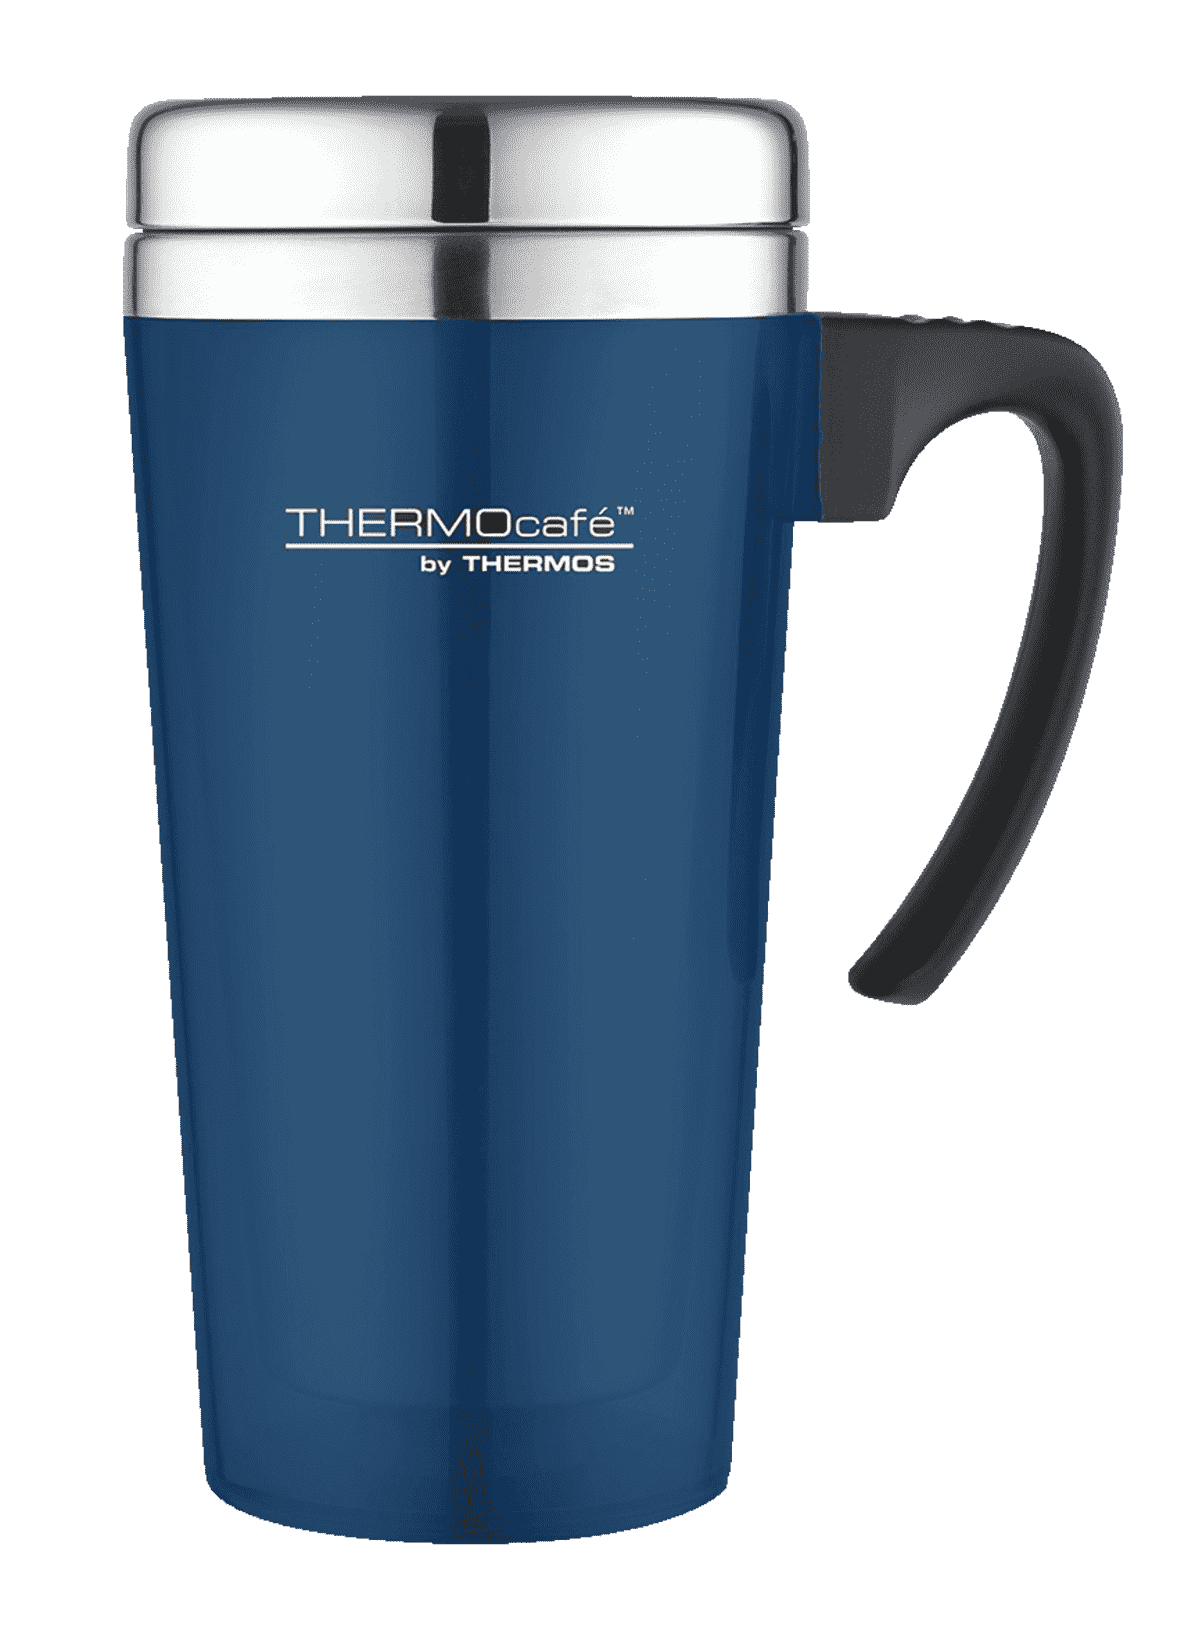 THERMOS  4061.256.040 Color Thermobecher in Blau/Silber | 05010576902283